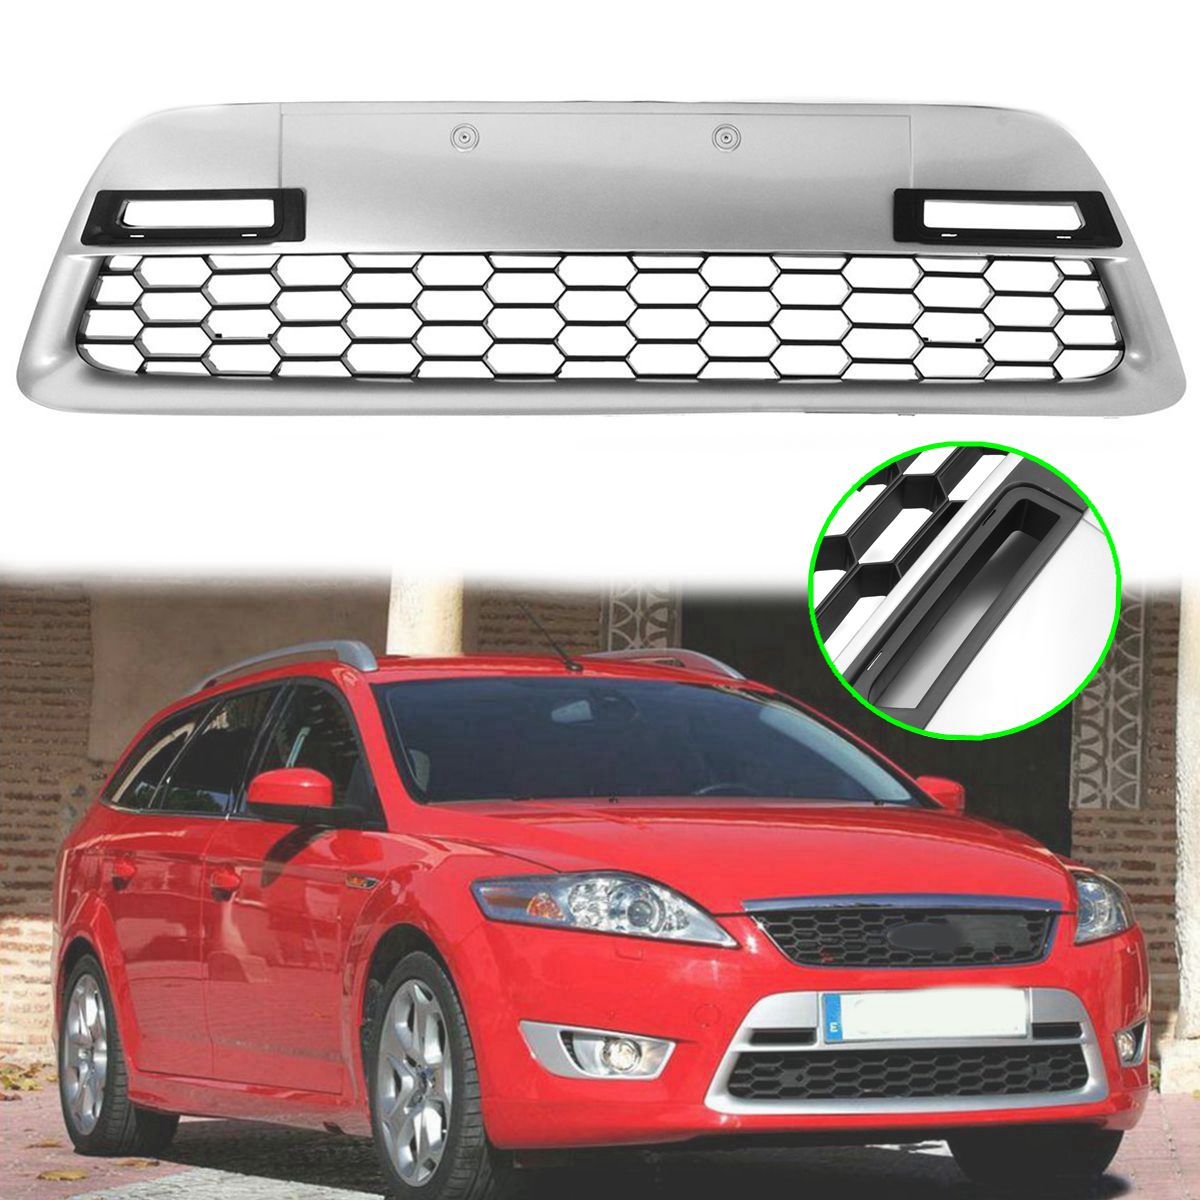 105cm Auto Radiator Centre Bumper Grille Panel Cover Car Grill Panel Trim for FORD Mondeo MK4 2007 2010